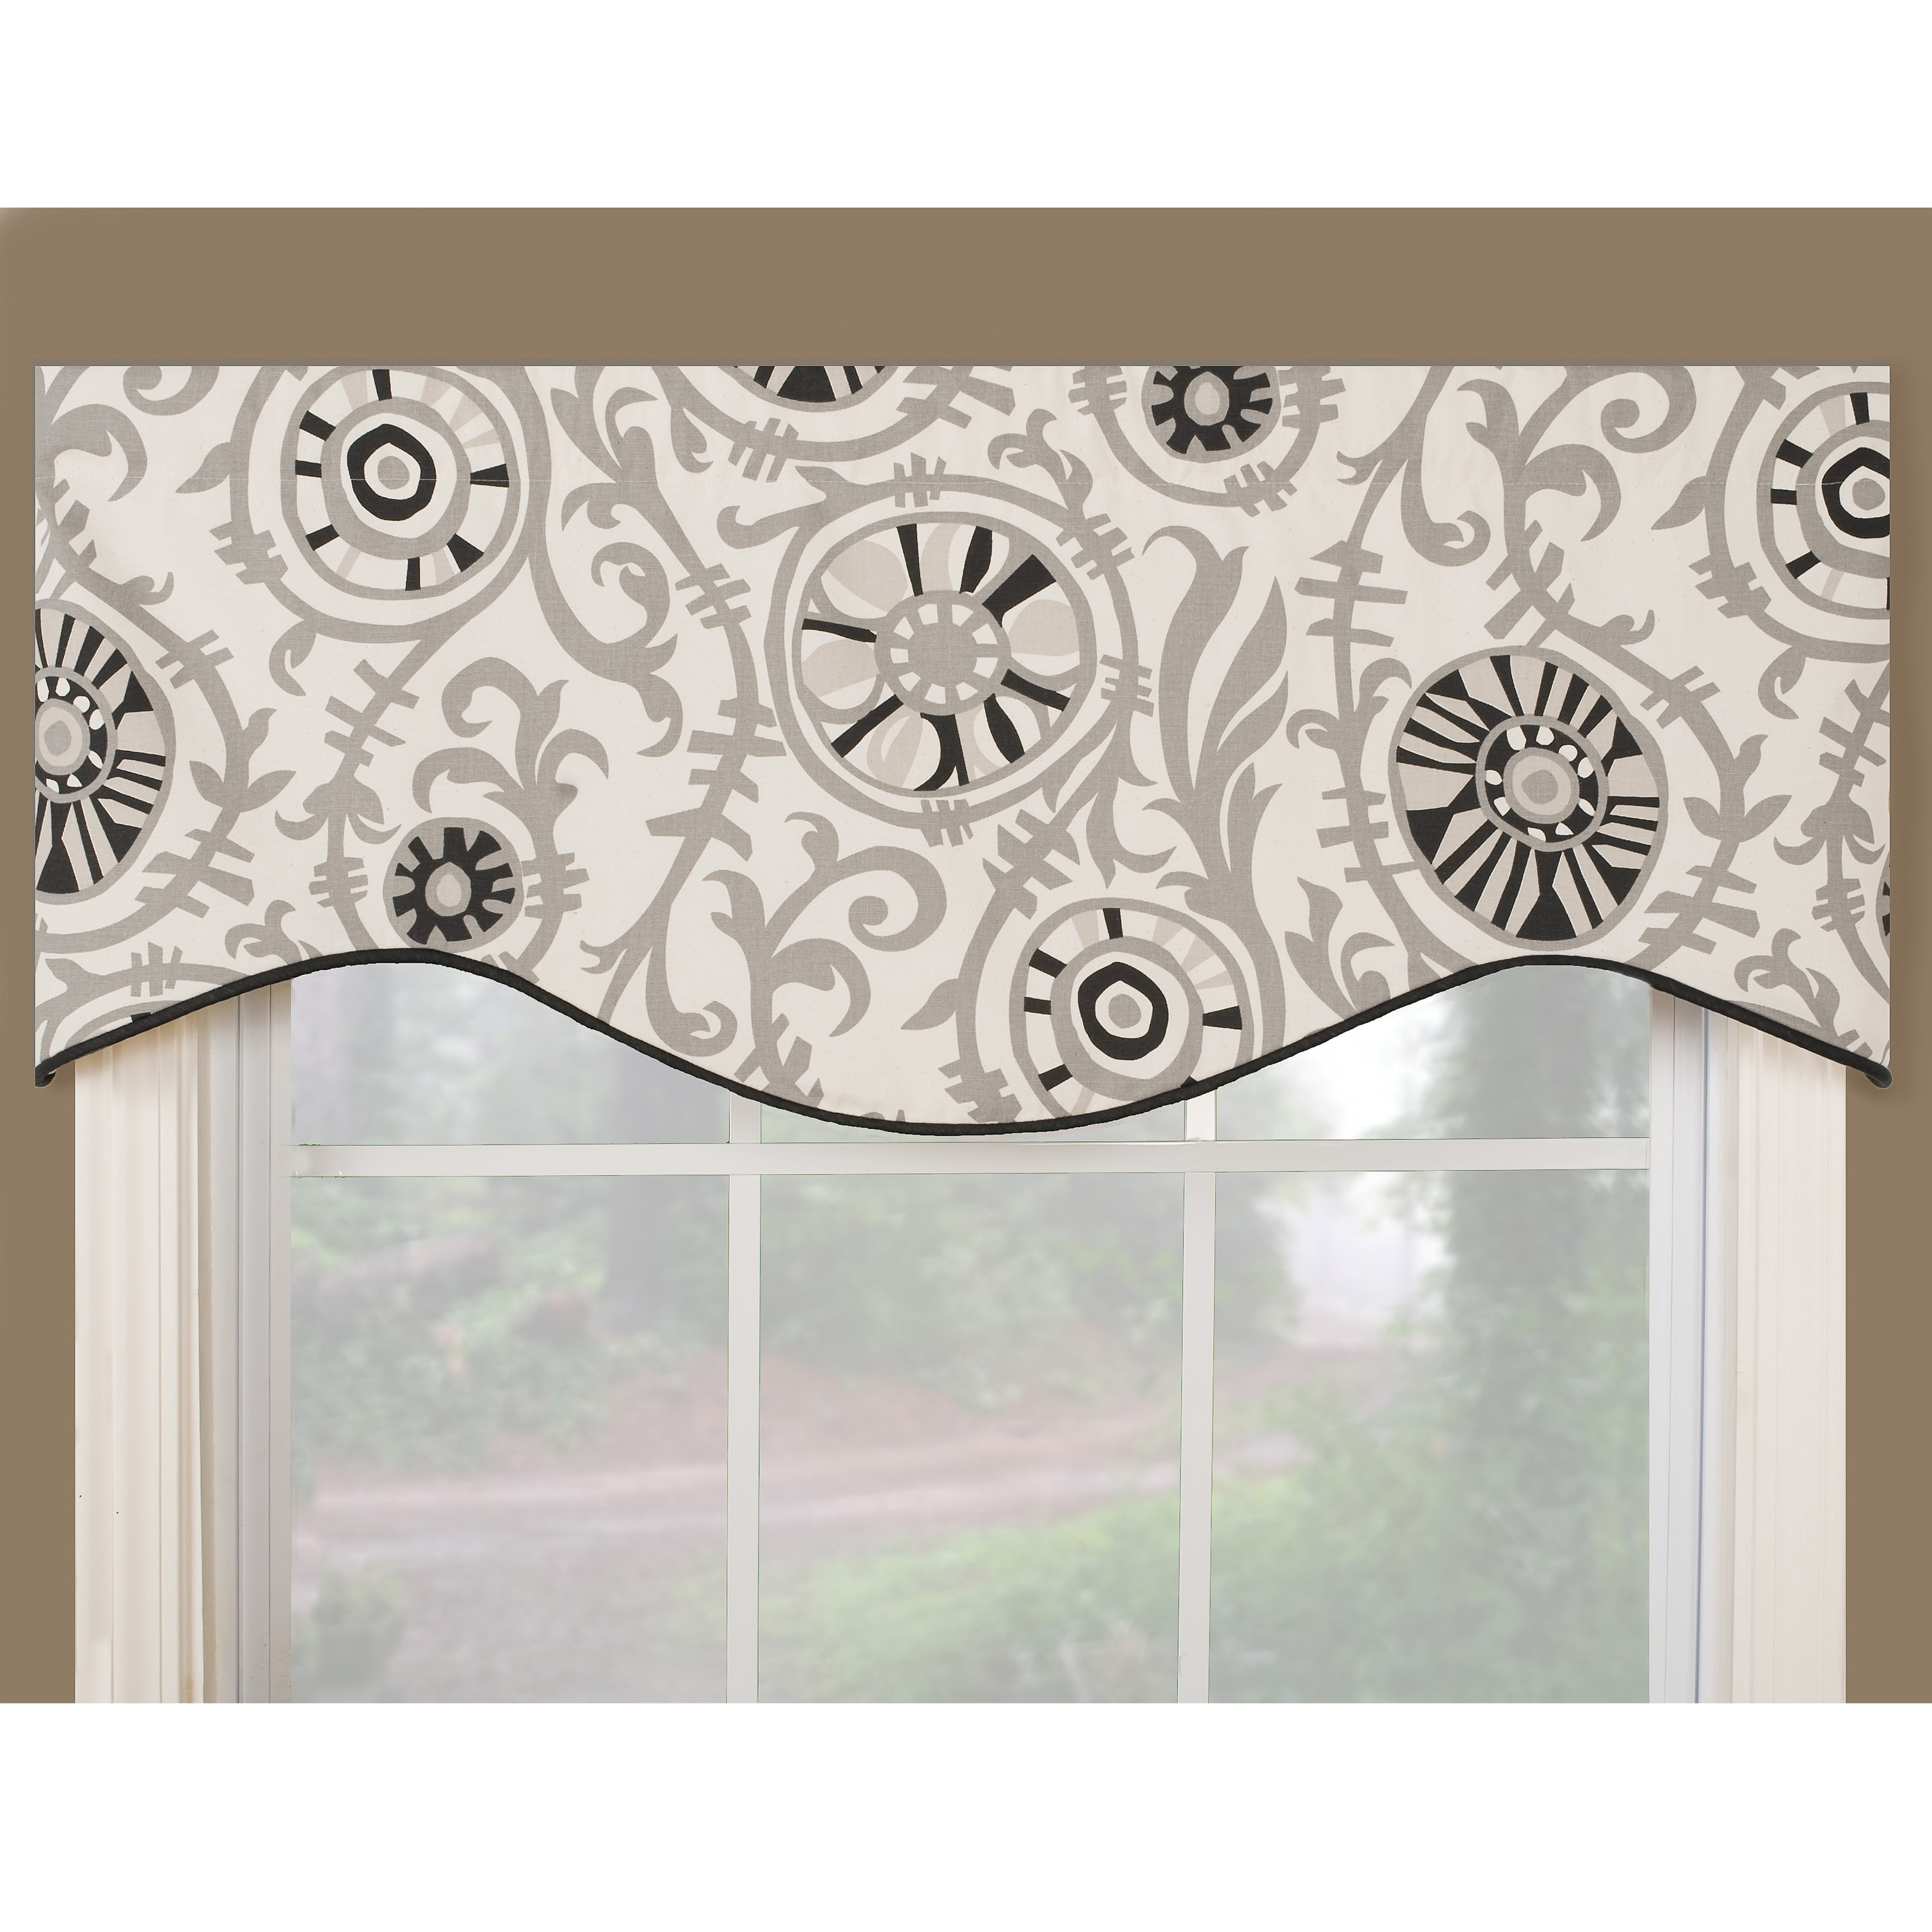 moroccan brown zoom listing window valance fullxfull print il scalloped peis